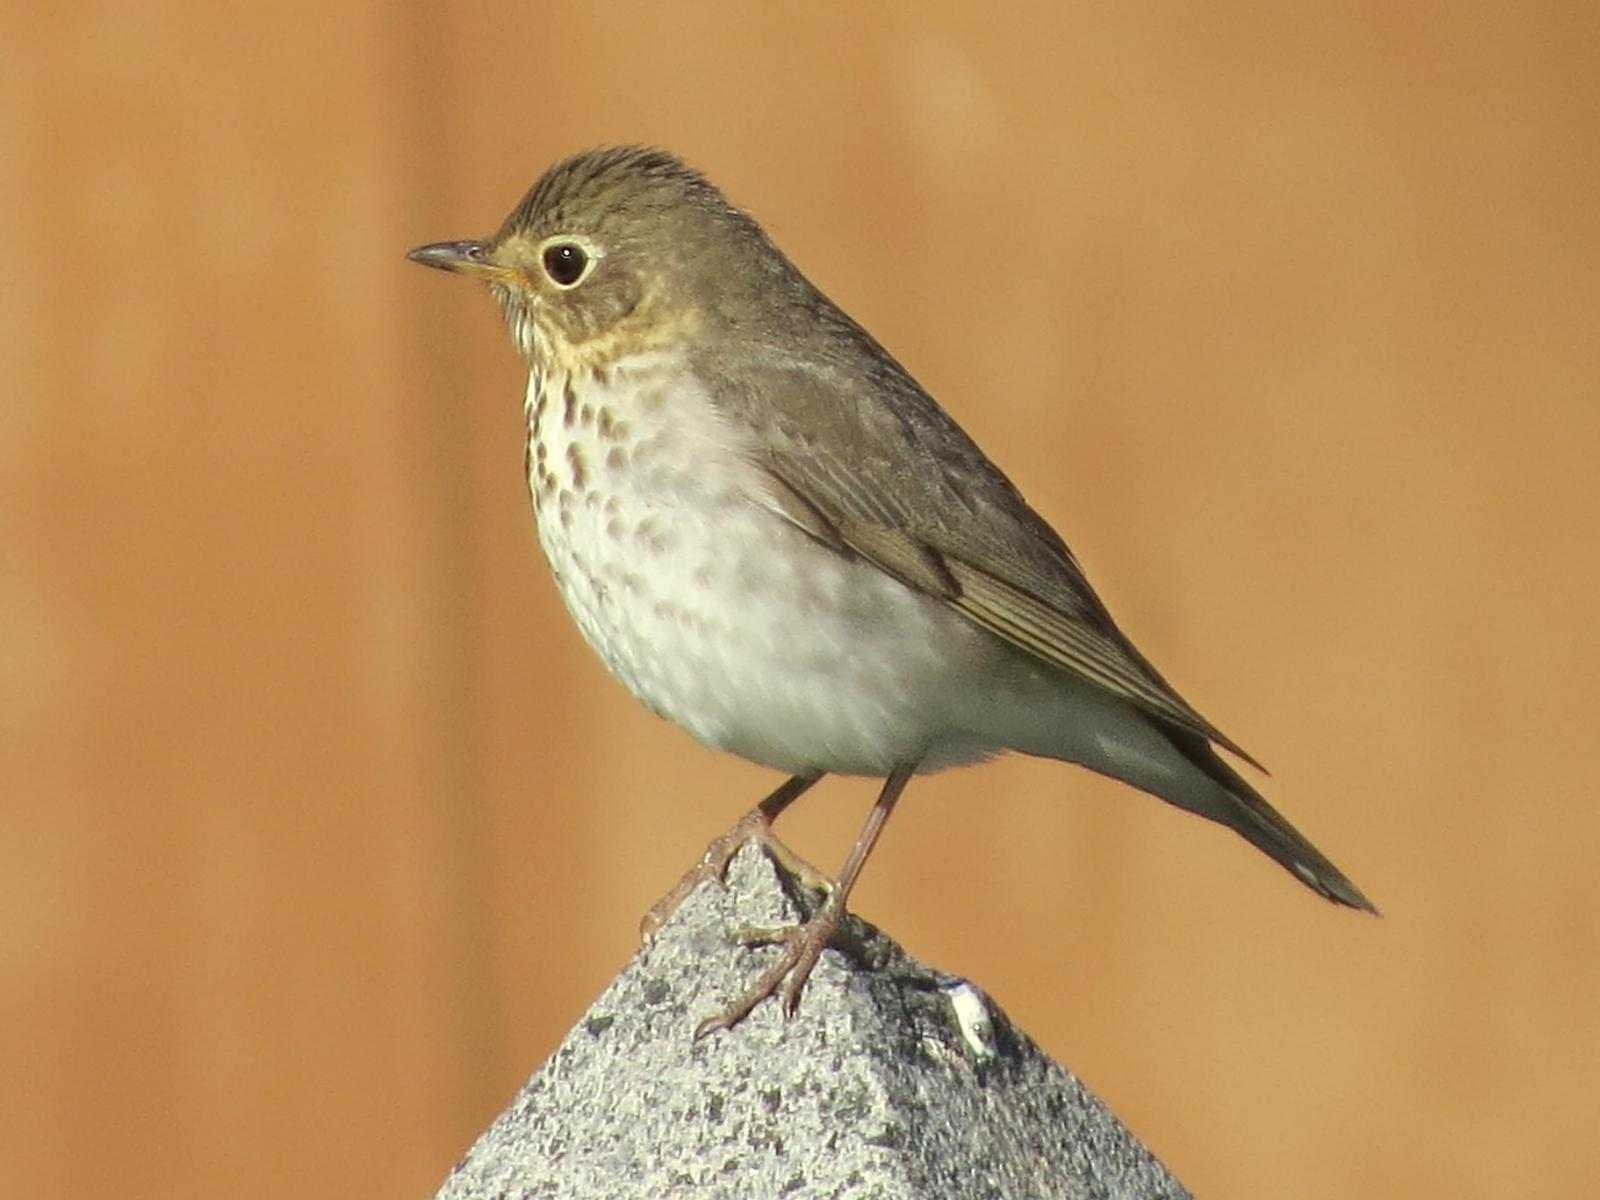 Swainson's Thrush Photo by Bob Neugebauer